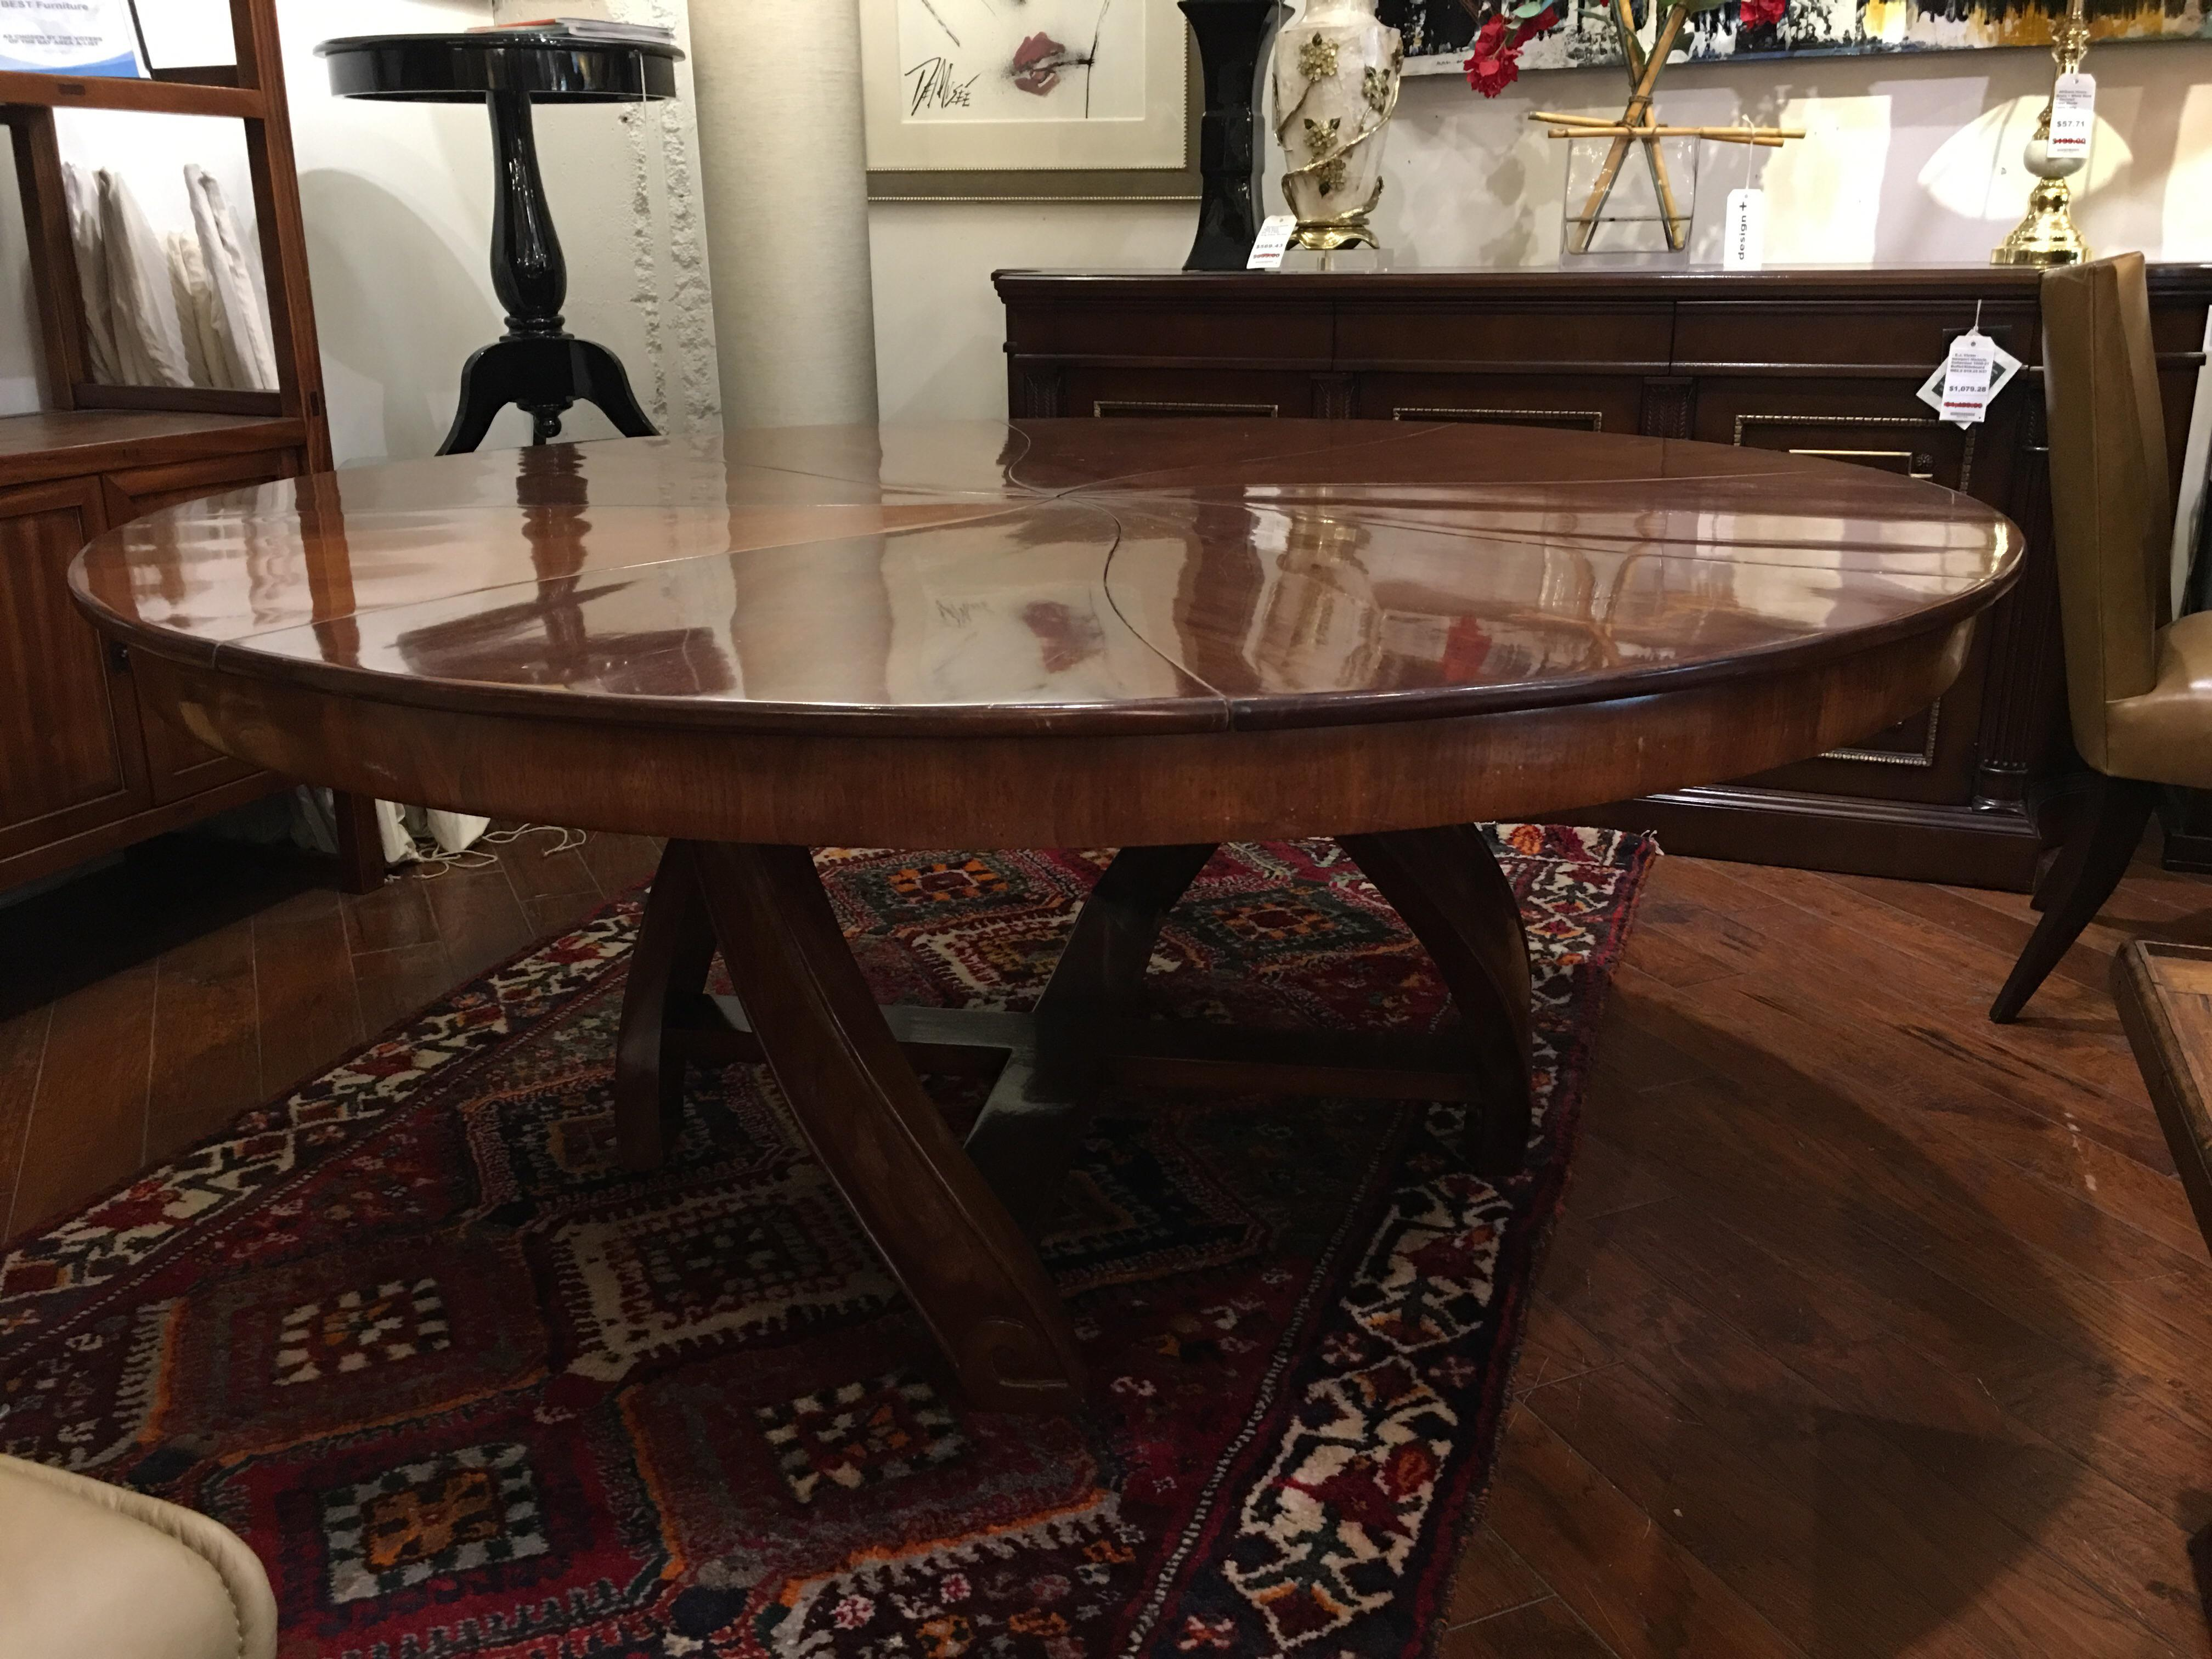 Design Plus Consignment Gallery Presents A Uniquely Expanding Dining Table  From Lu0027Rossi. This